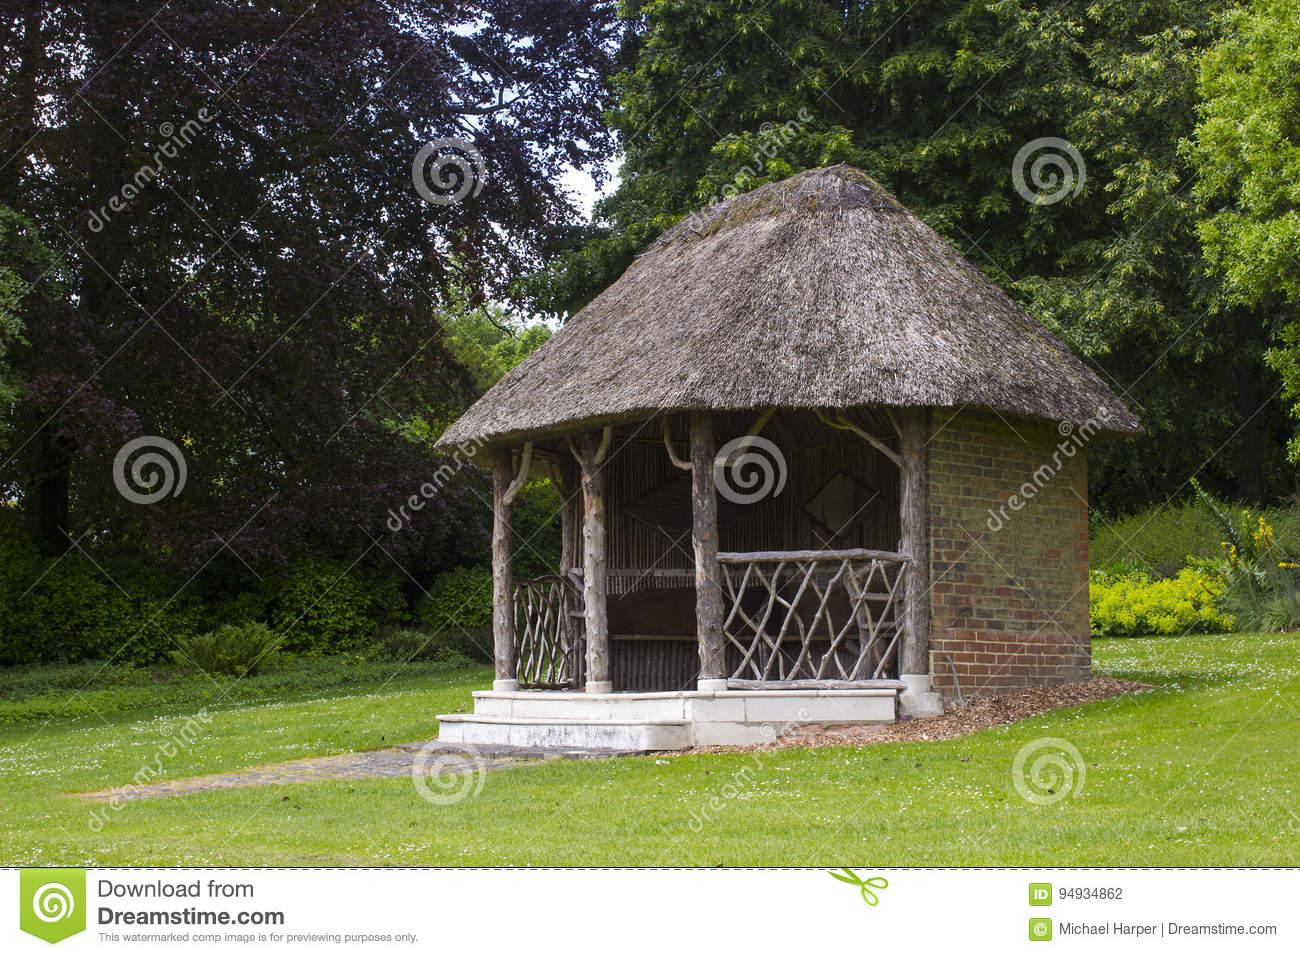 The 19th Century thatched summer house surrounded by beautiful flower beds and gravel paths in the walled garden at West Dean